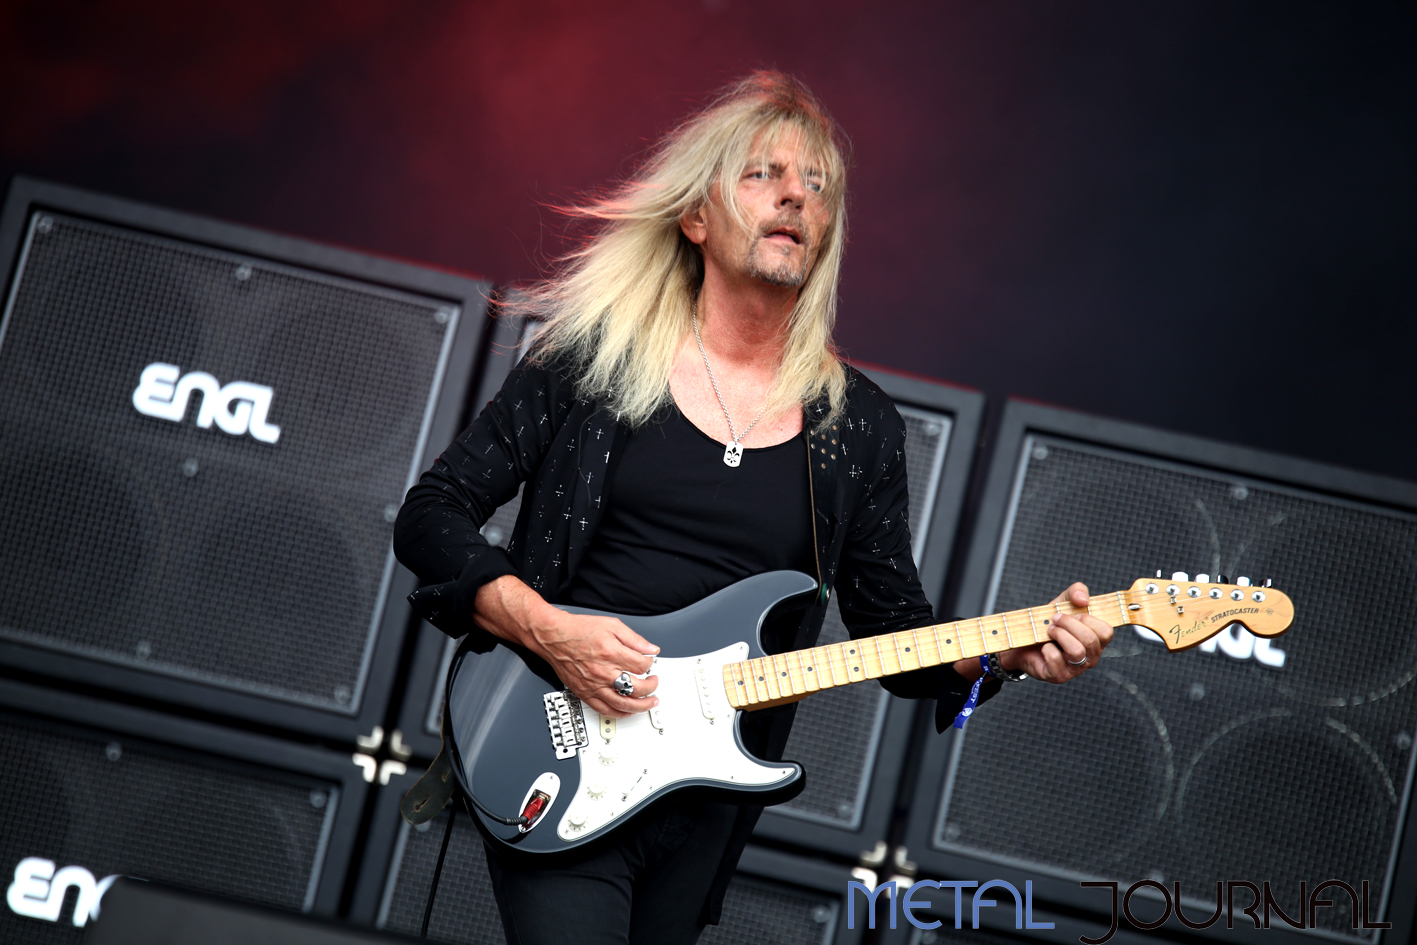 axel rudi pell rock fest 18 - metal journal pic 2